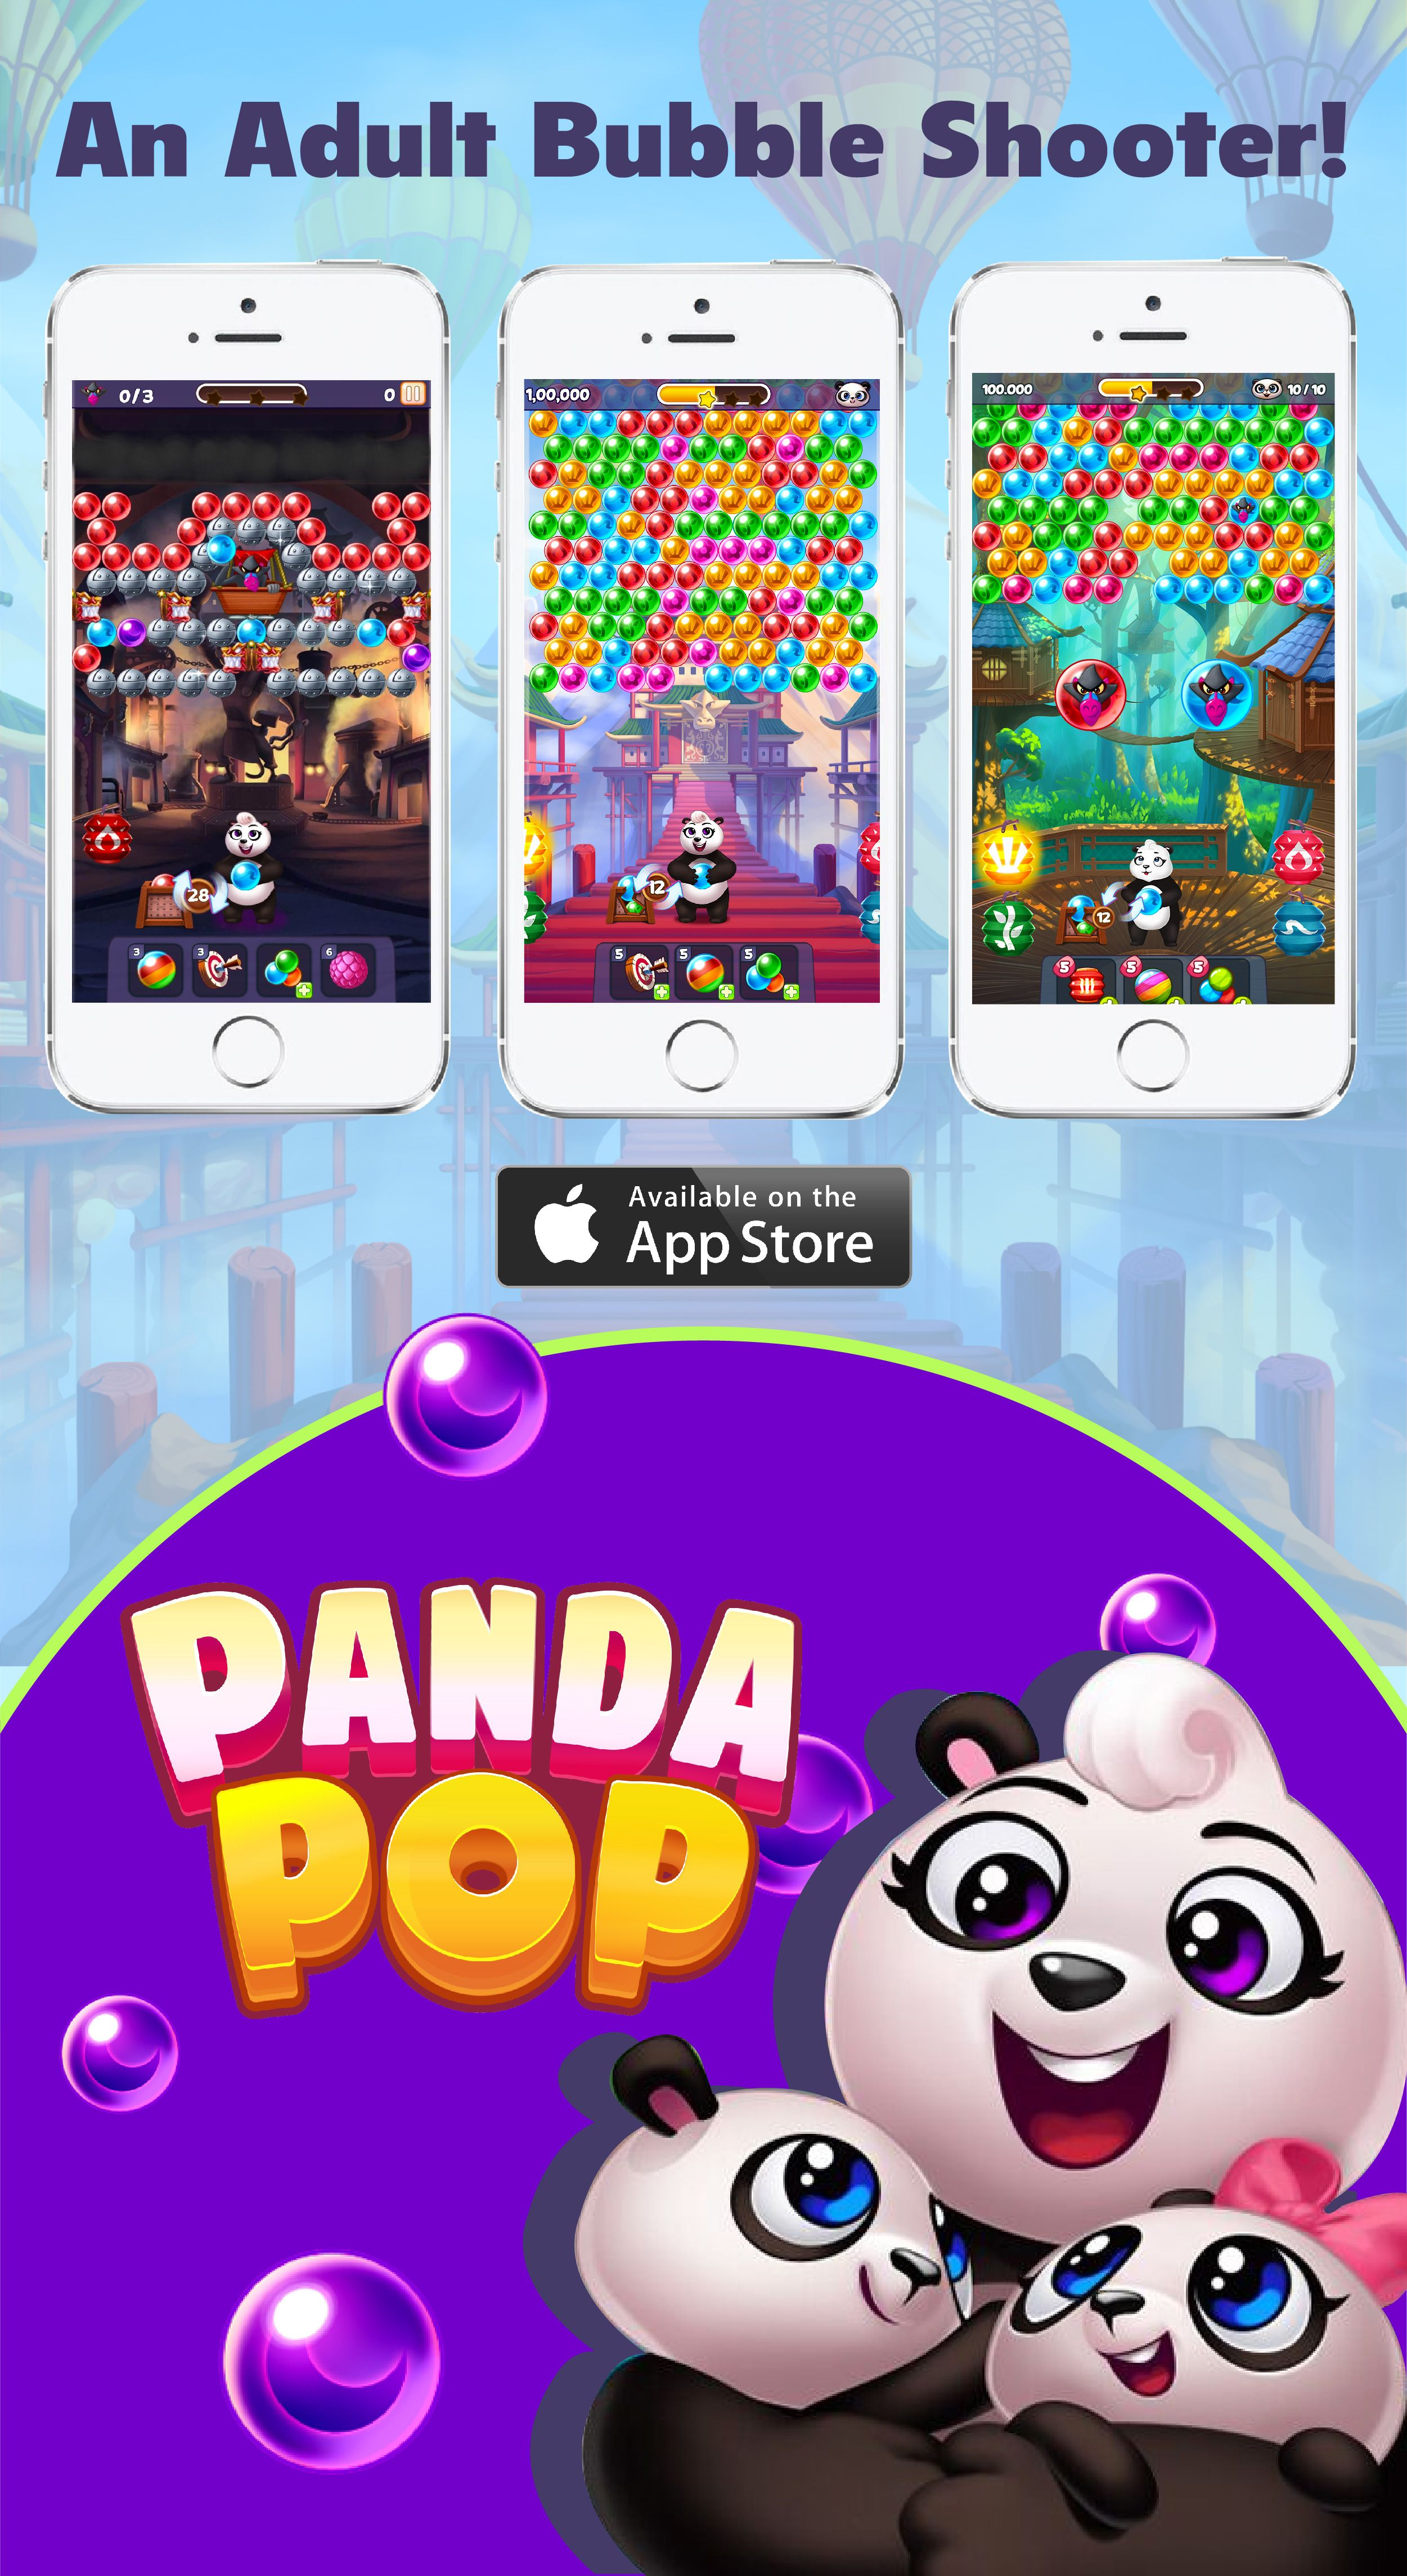 Play the new Panda Pop Game, download today! Bubble